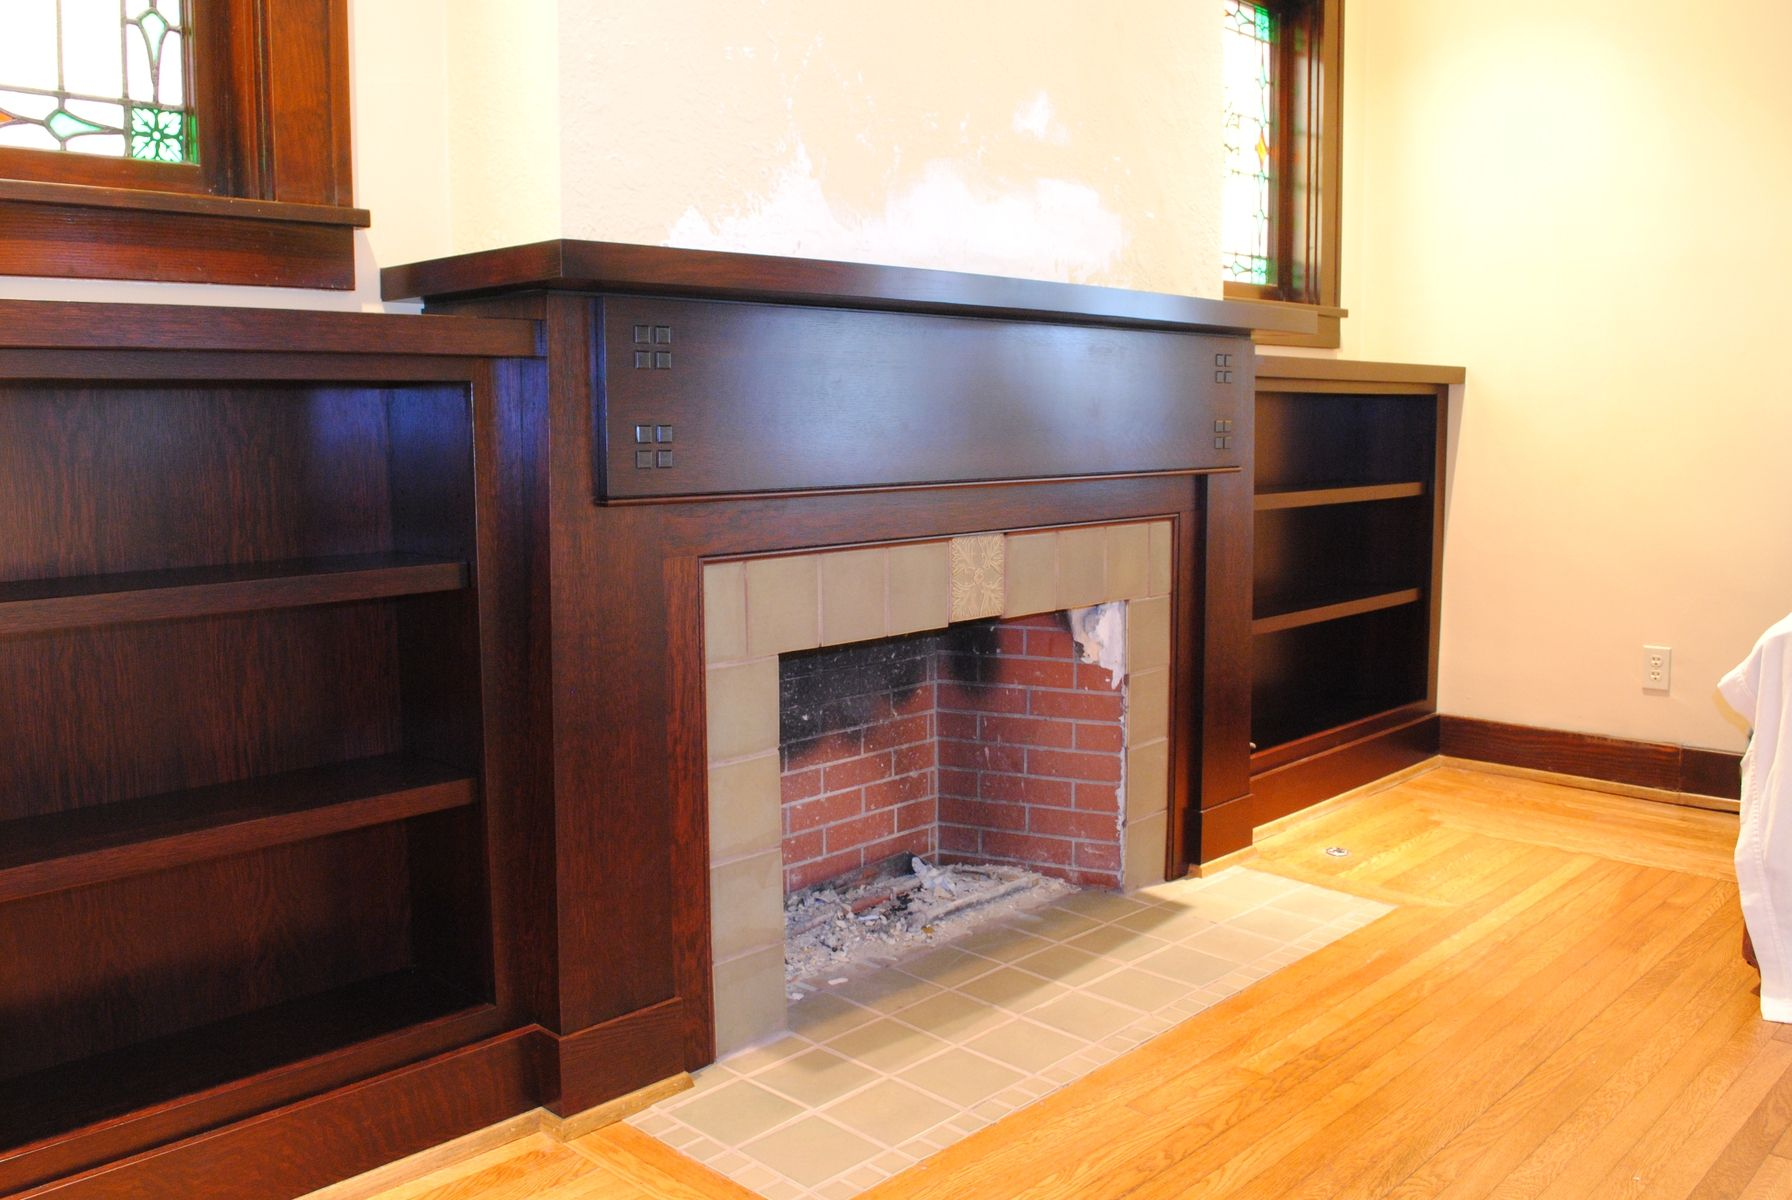 photos fireside bookcase surrounds | Custom Qt. Sawn White Oak Fireplace Surround & Bookcases by Cinski ...